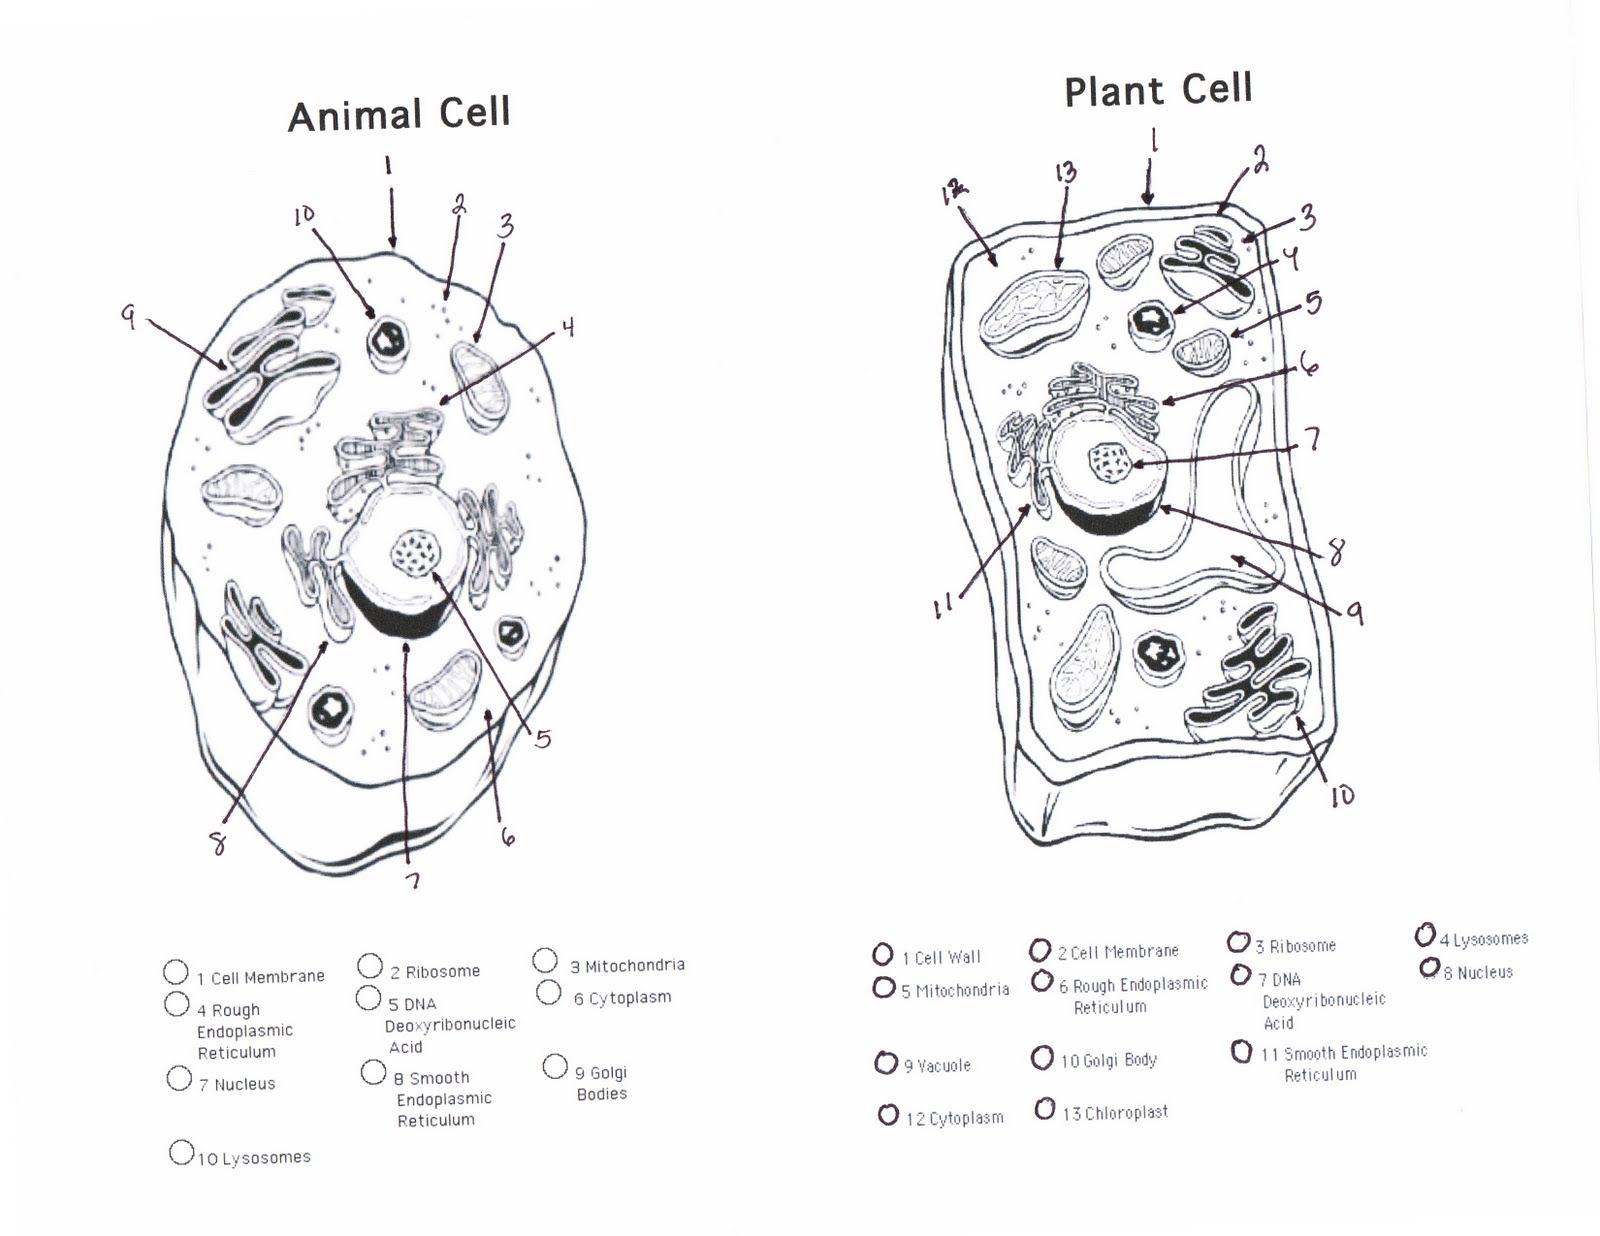 medium resolution of plant and animal cell diagram unlabeled printable diagram